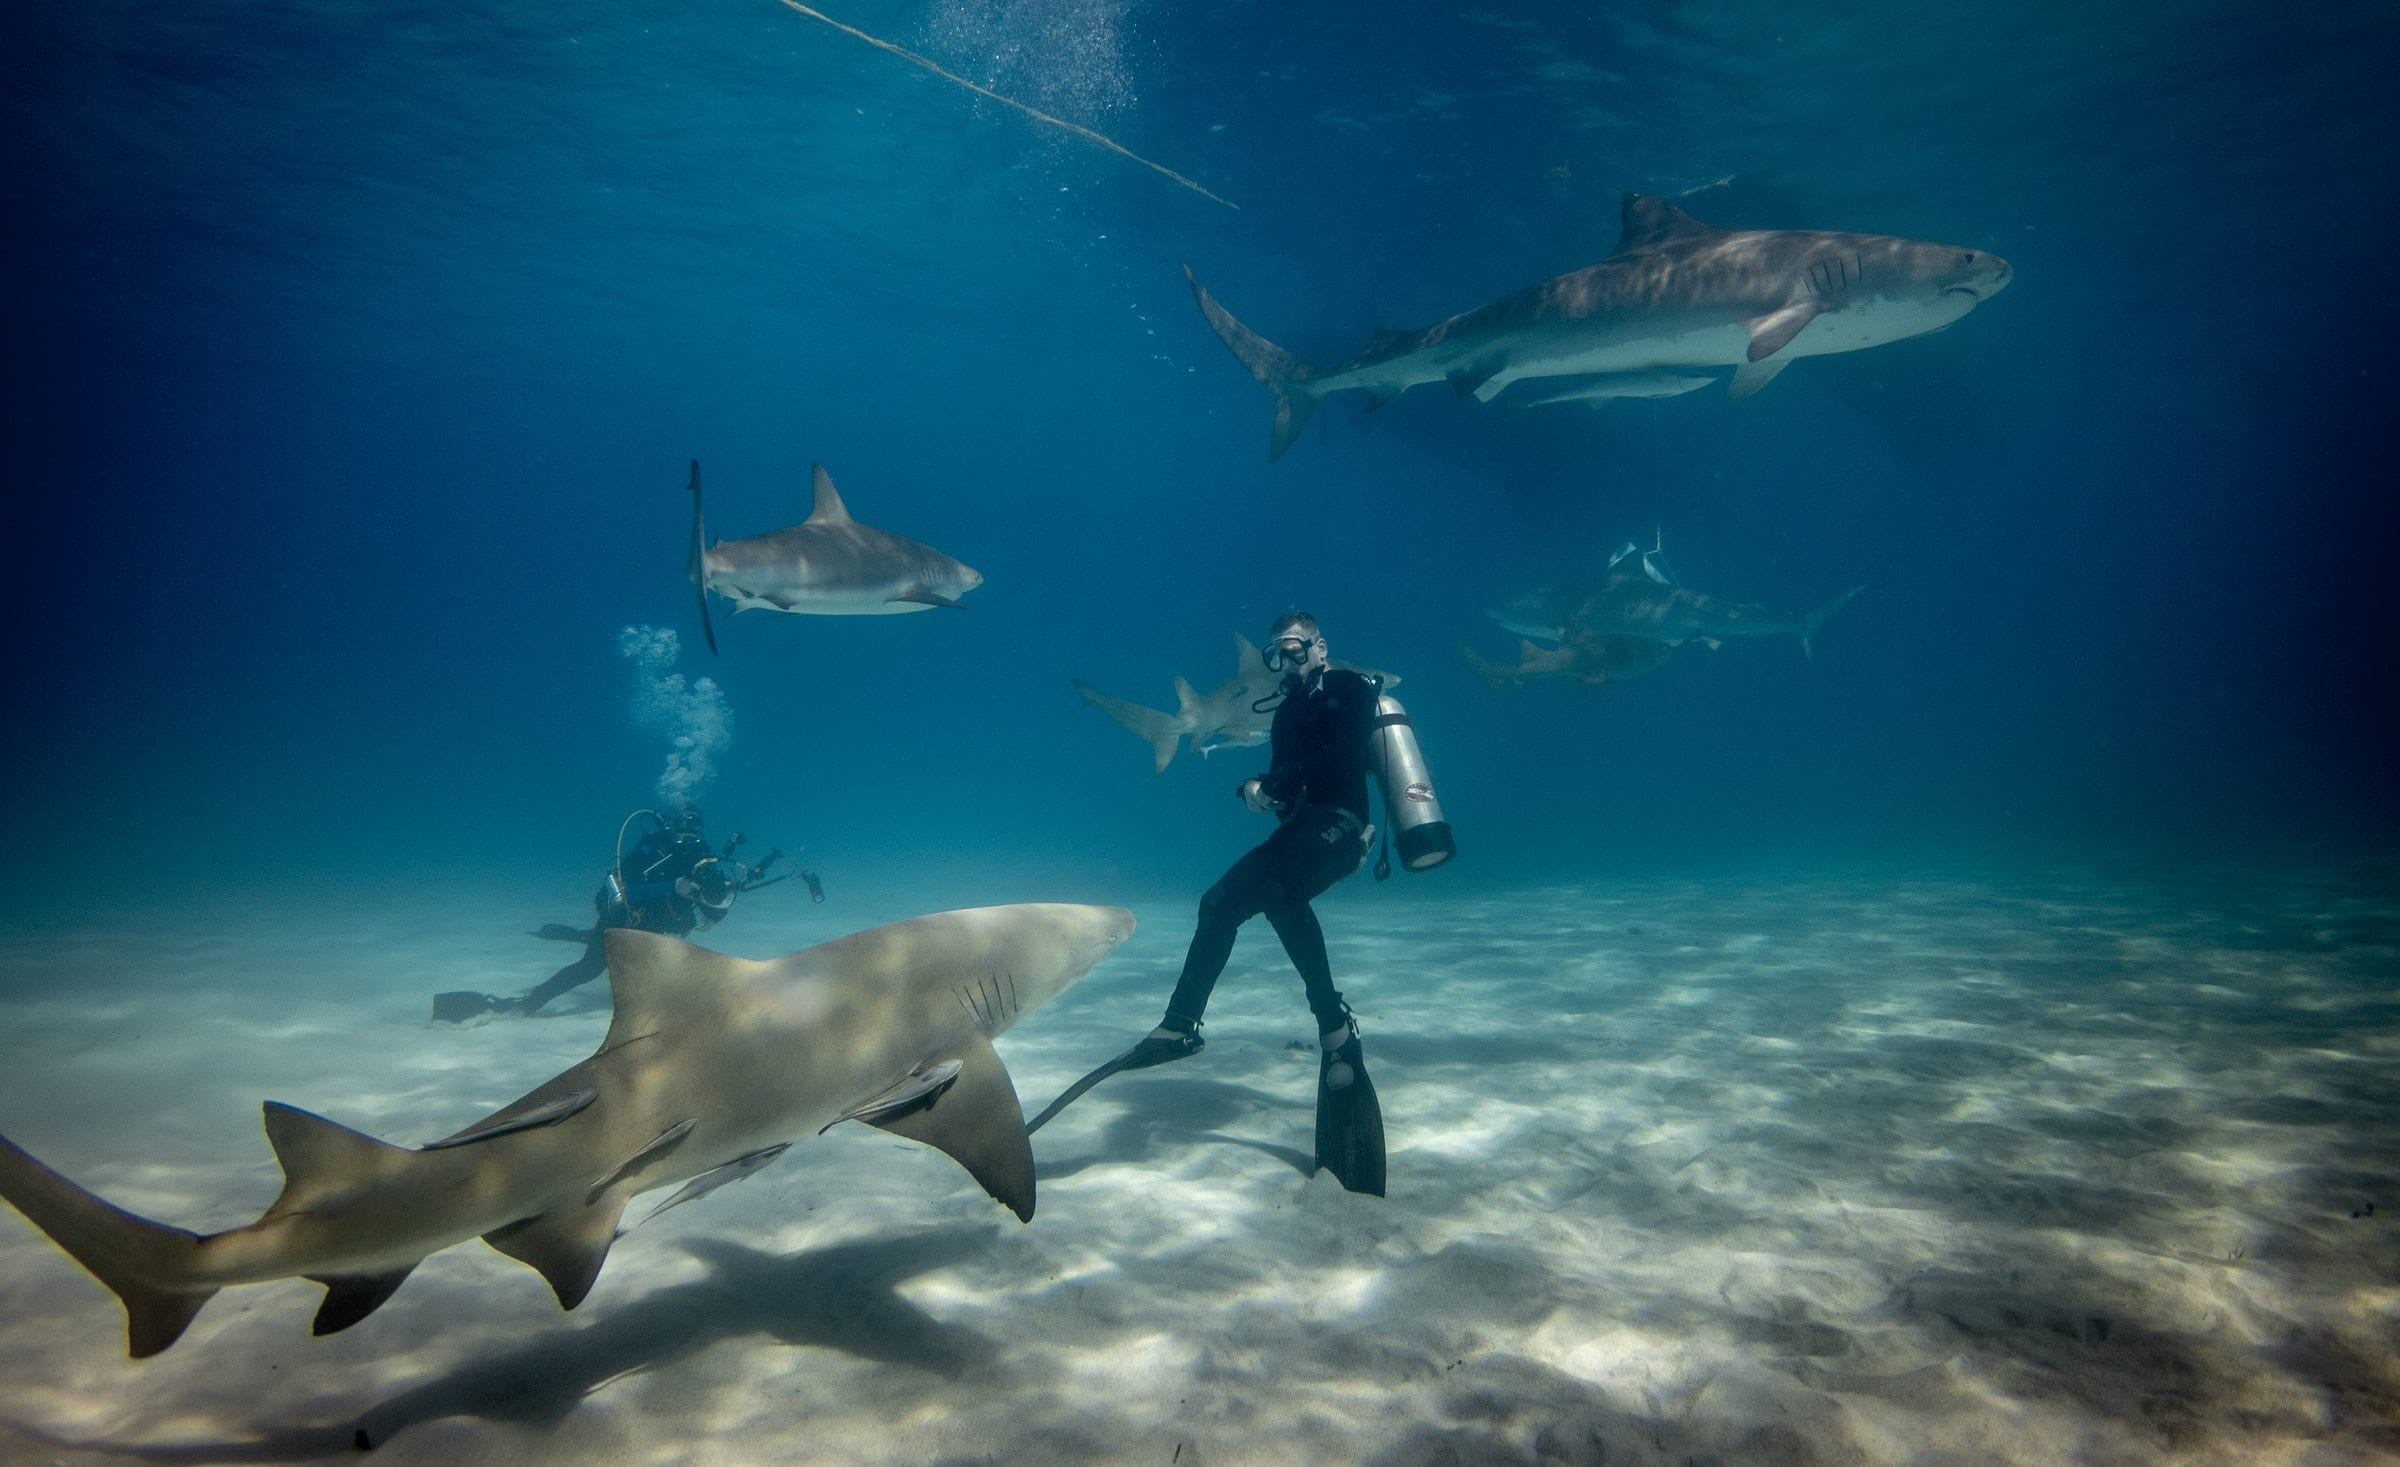 Divers swimming with sharks